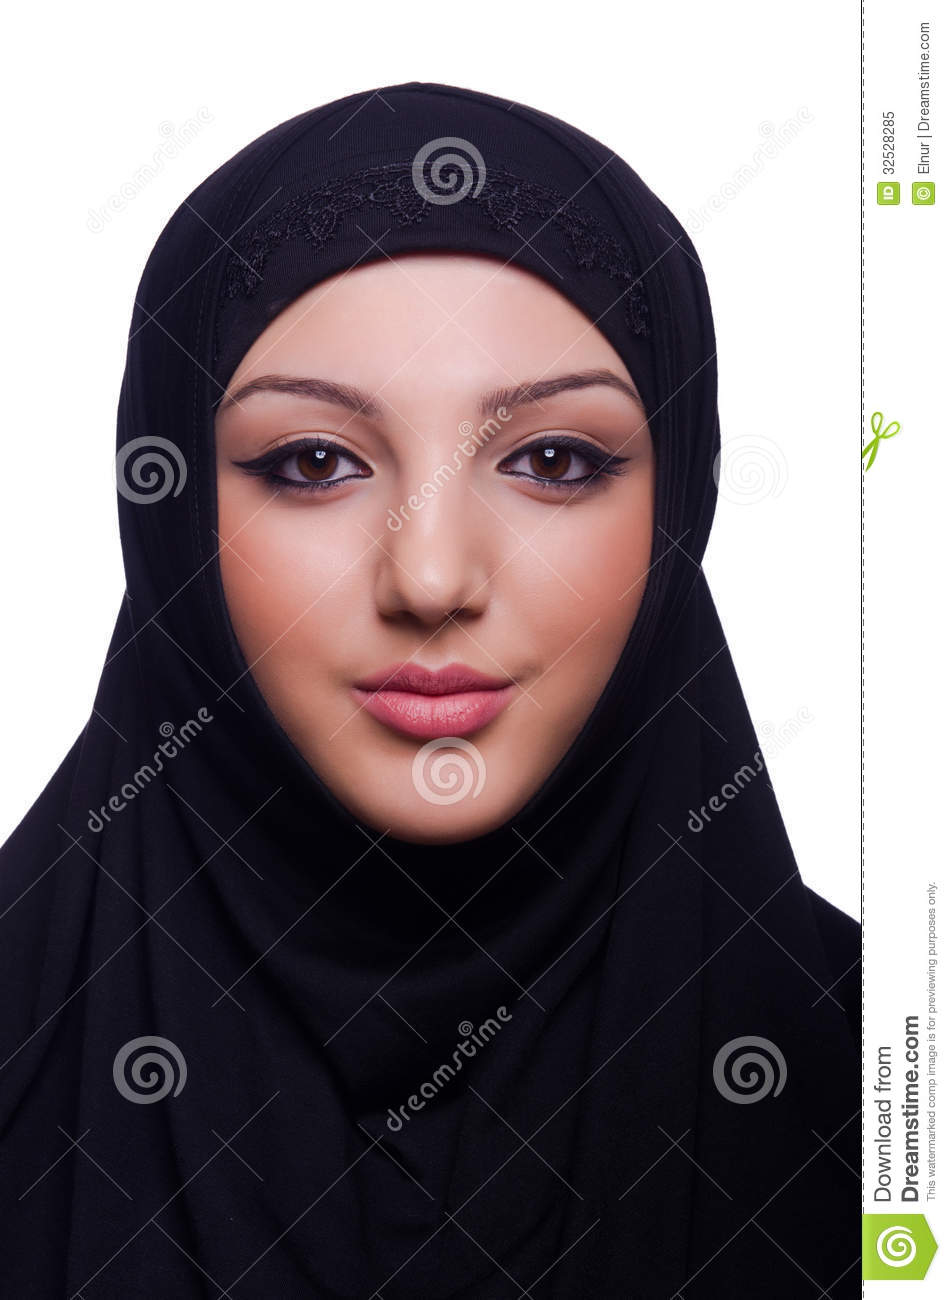 whiting muslim girl personals Besides, these women are as beautiful, as slavic girls check out any muslim dating site to see for yourself so why not try dating a muslim girl for a change.